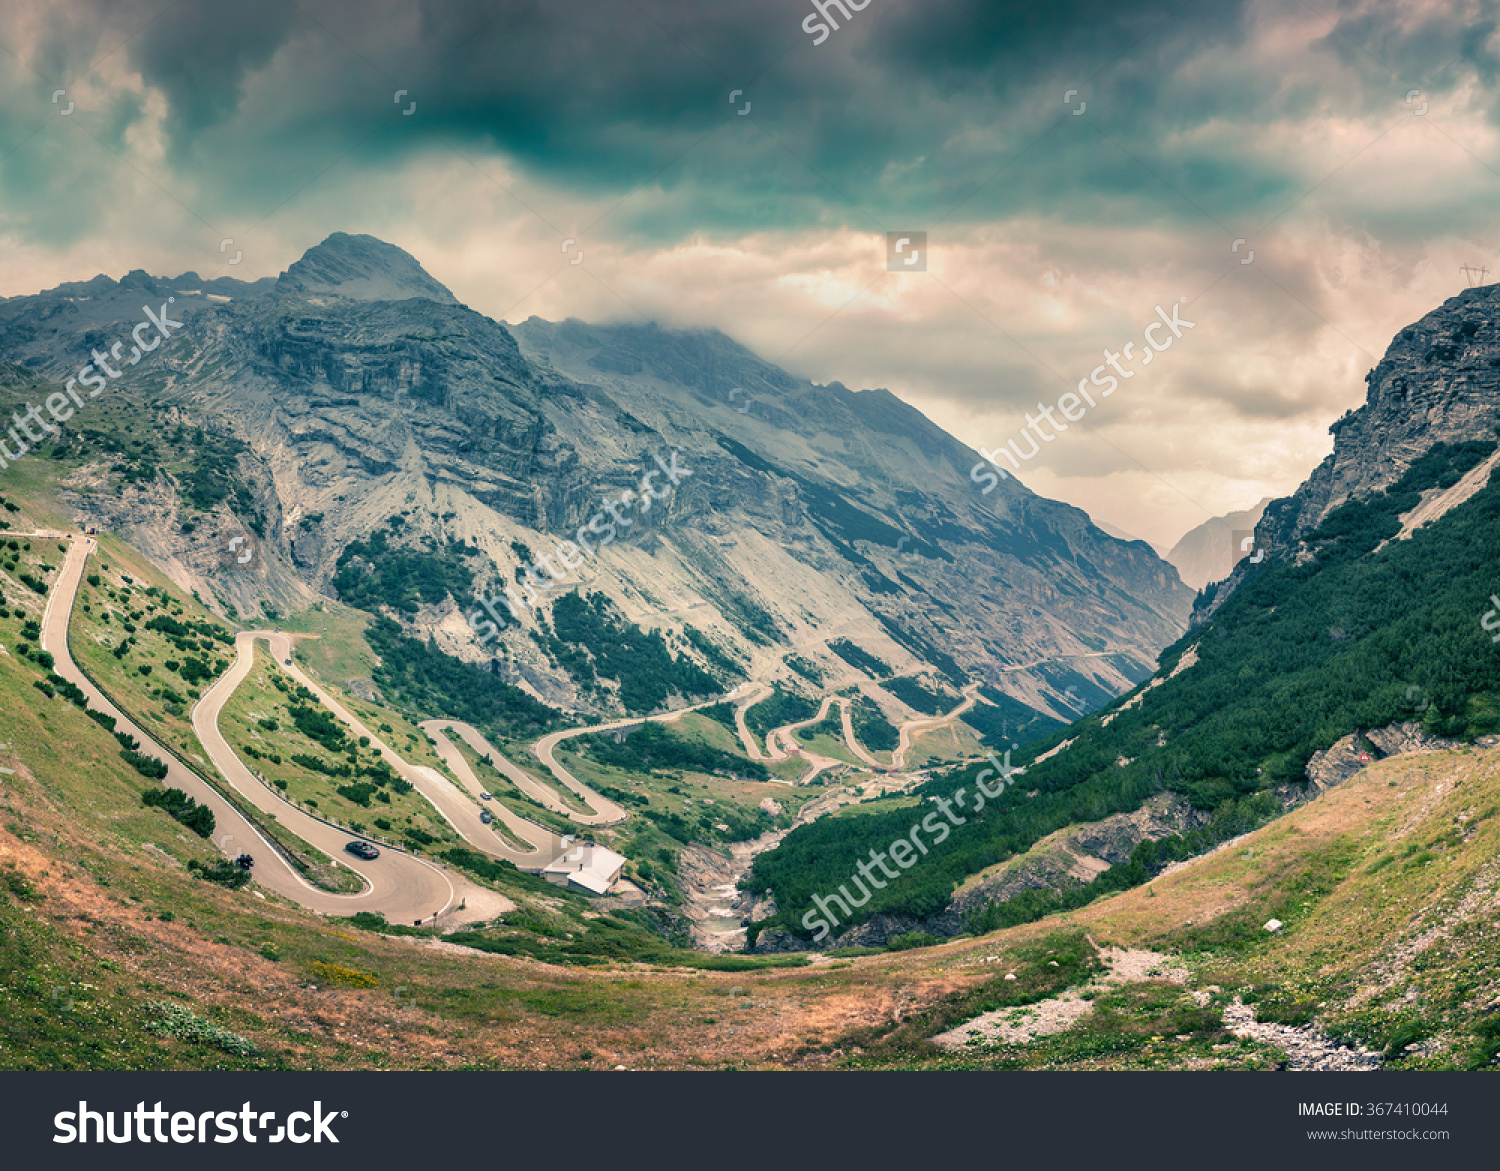 View From The Top Of Famous Italian Stelvio High Alpine Road.